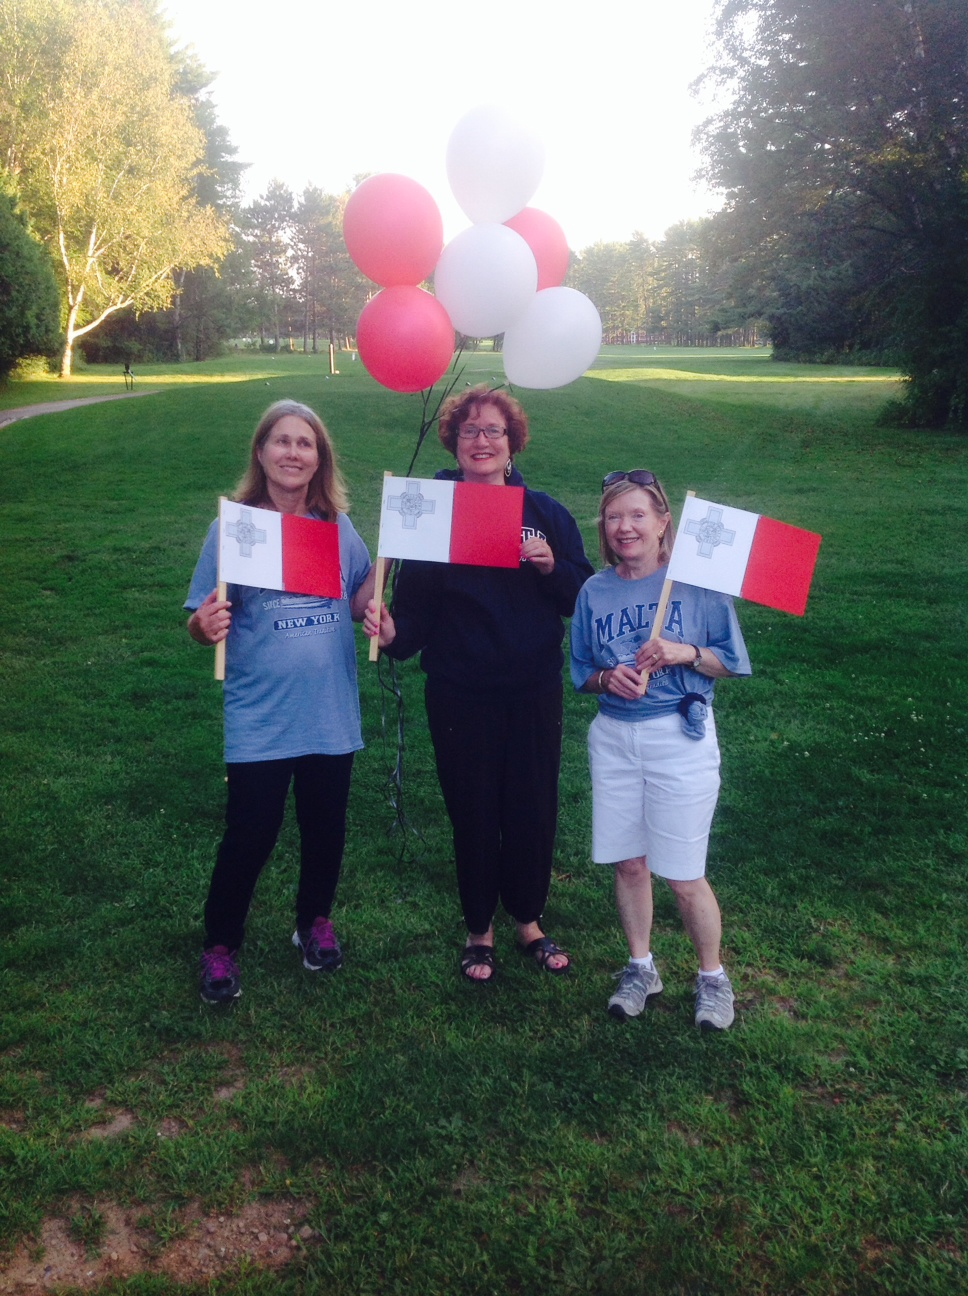 Donna, Marlene, and Shirley have a poetry reading in Malta, NY (USA) to honor the people of Malta on Malta's independence day (Sep 21).